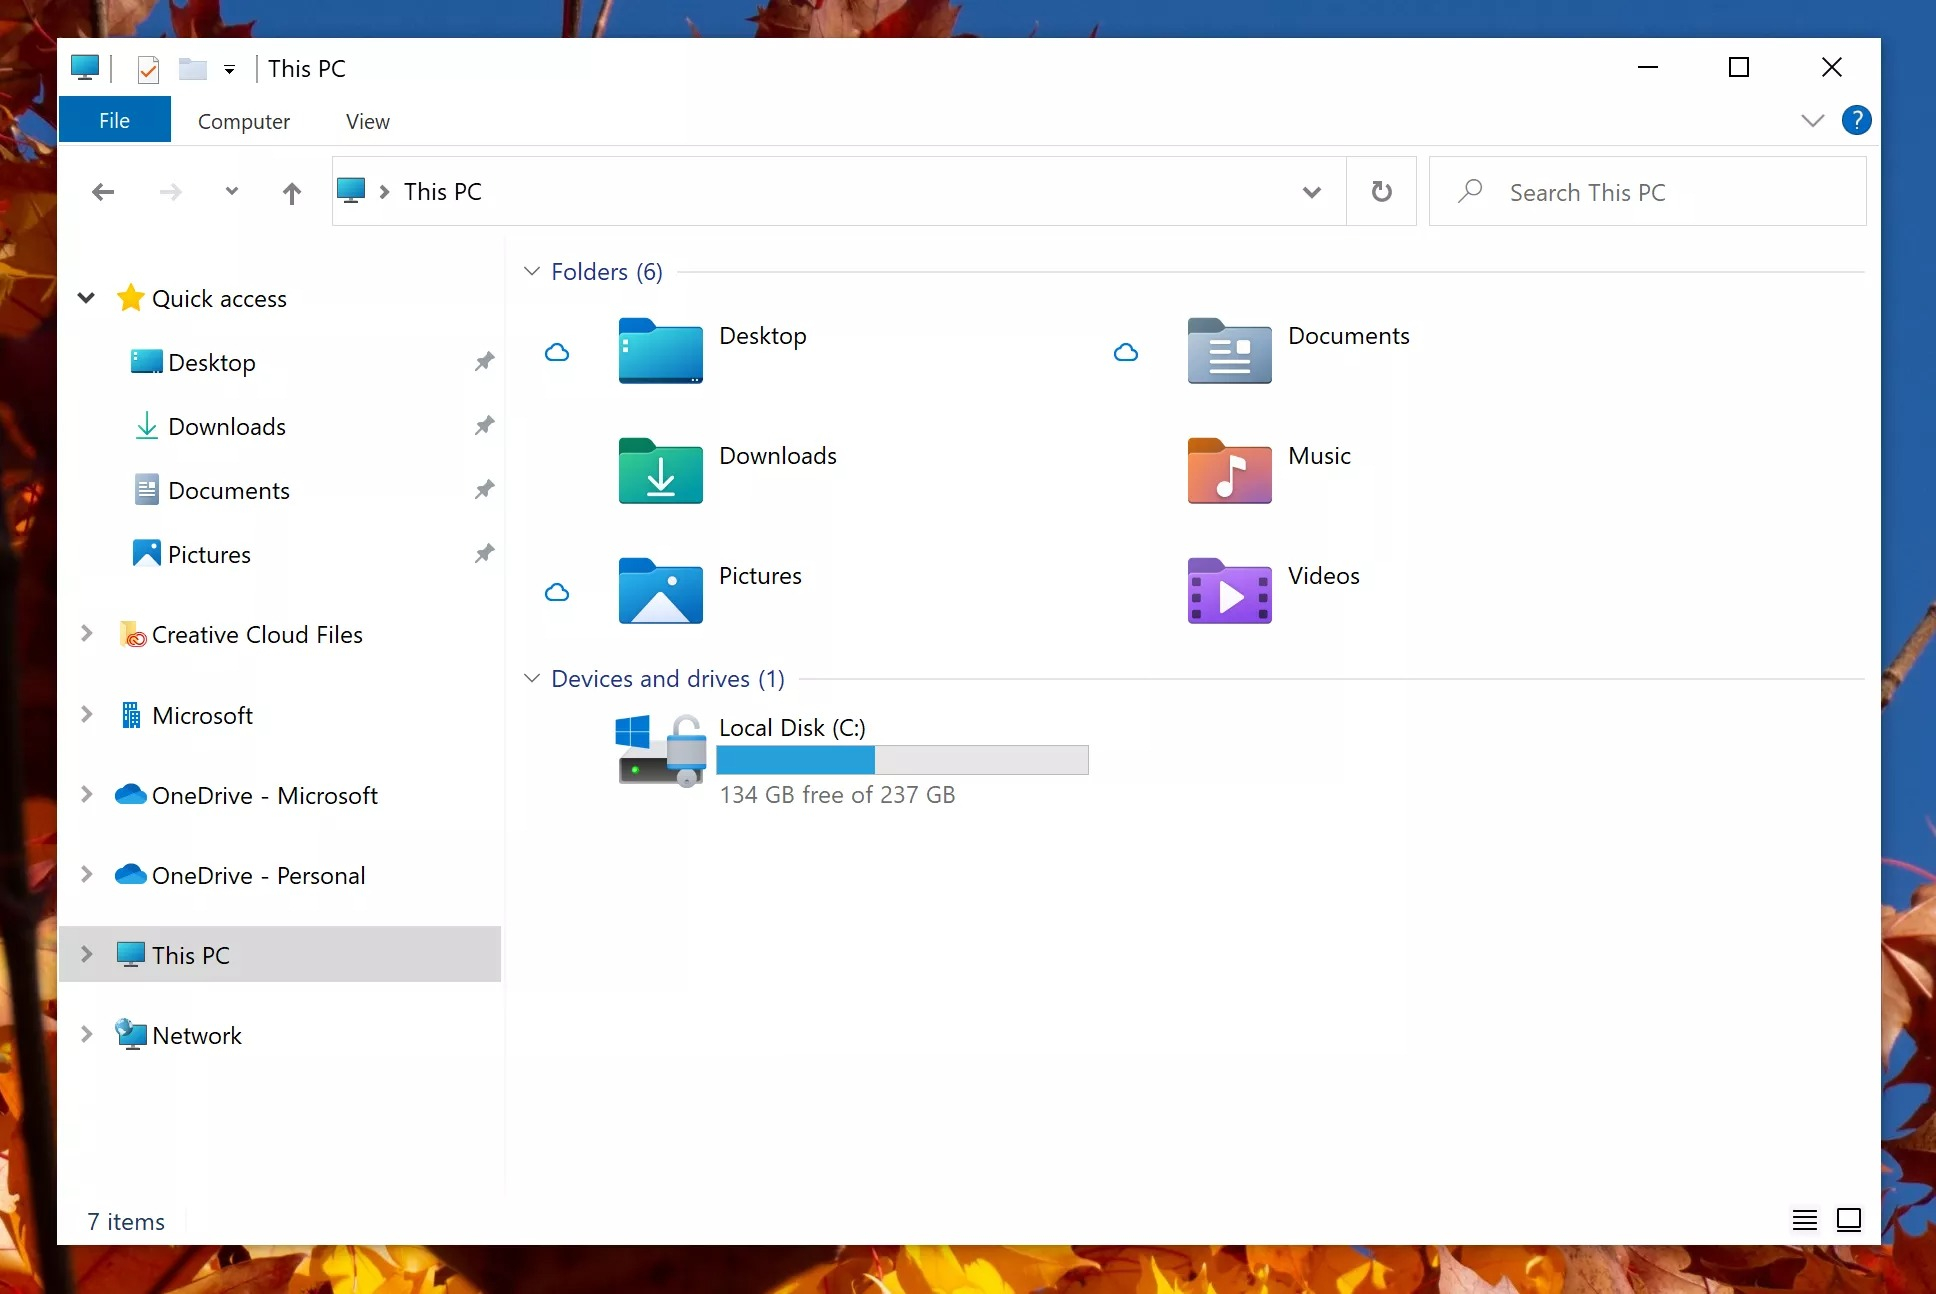 Windows 10 gets new icons for the File Explorer in latest Insider build